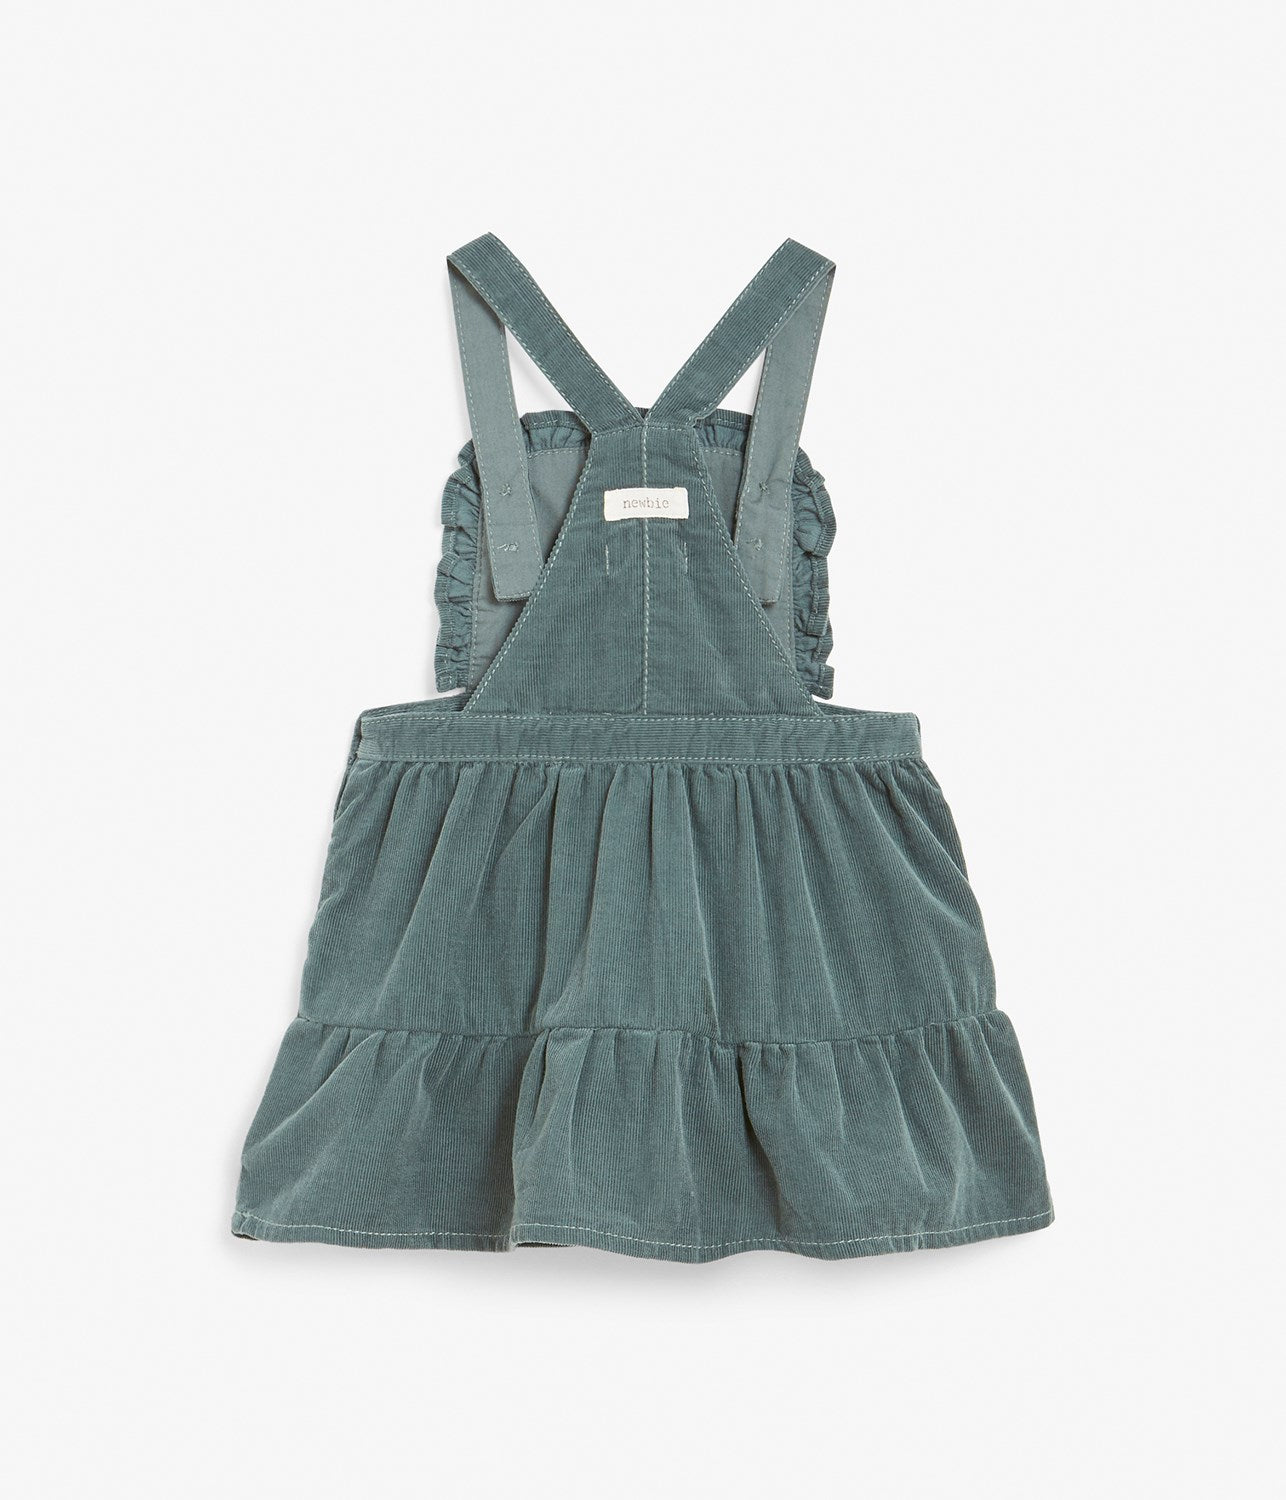 Baby green corduroy pinafore dress